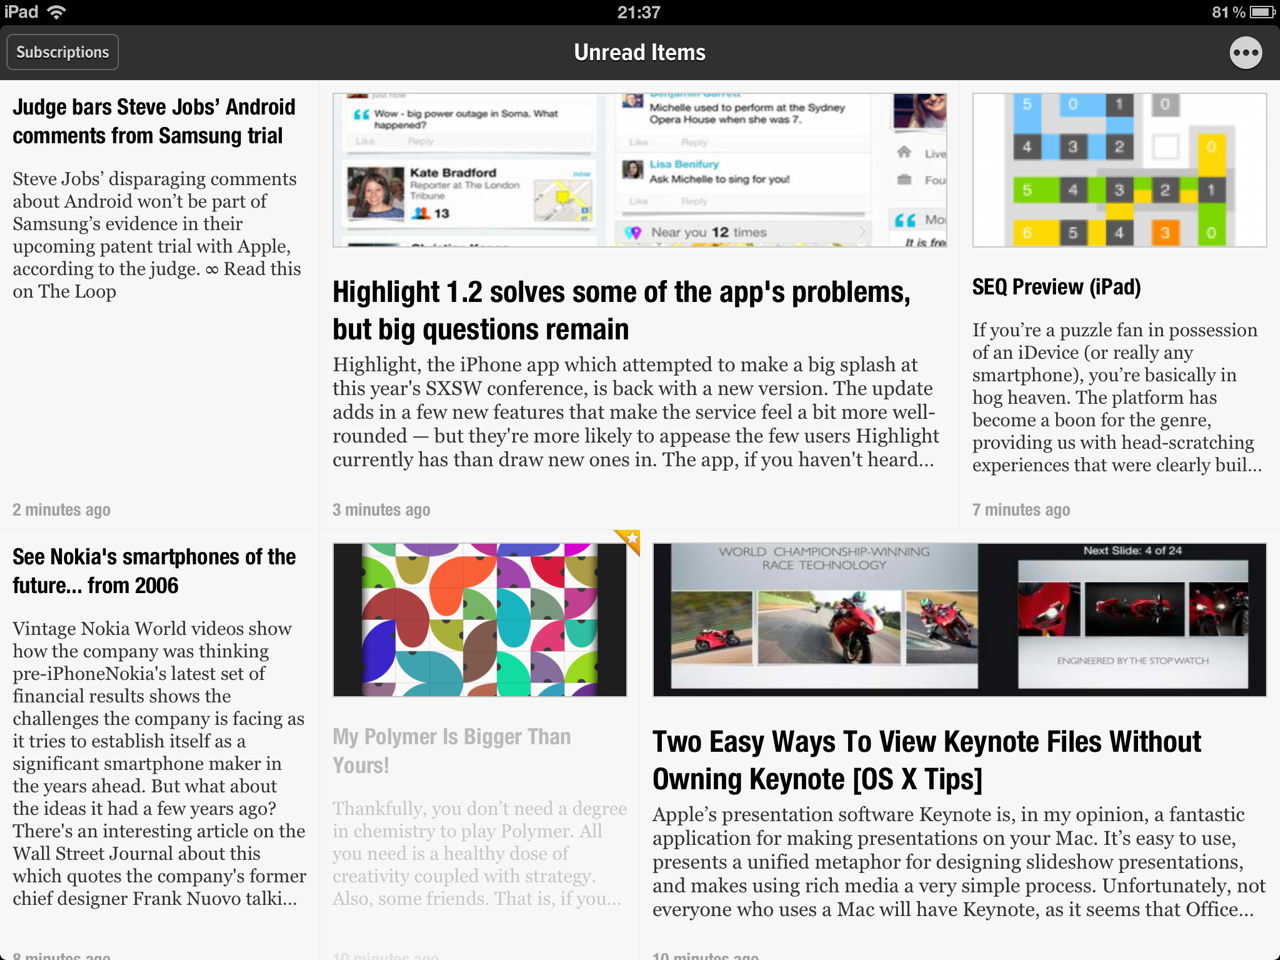 Feed Your Need For RSS Feeds All Day And All Night With Newsify's New Night Mode